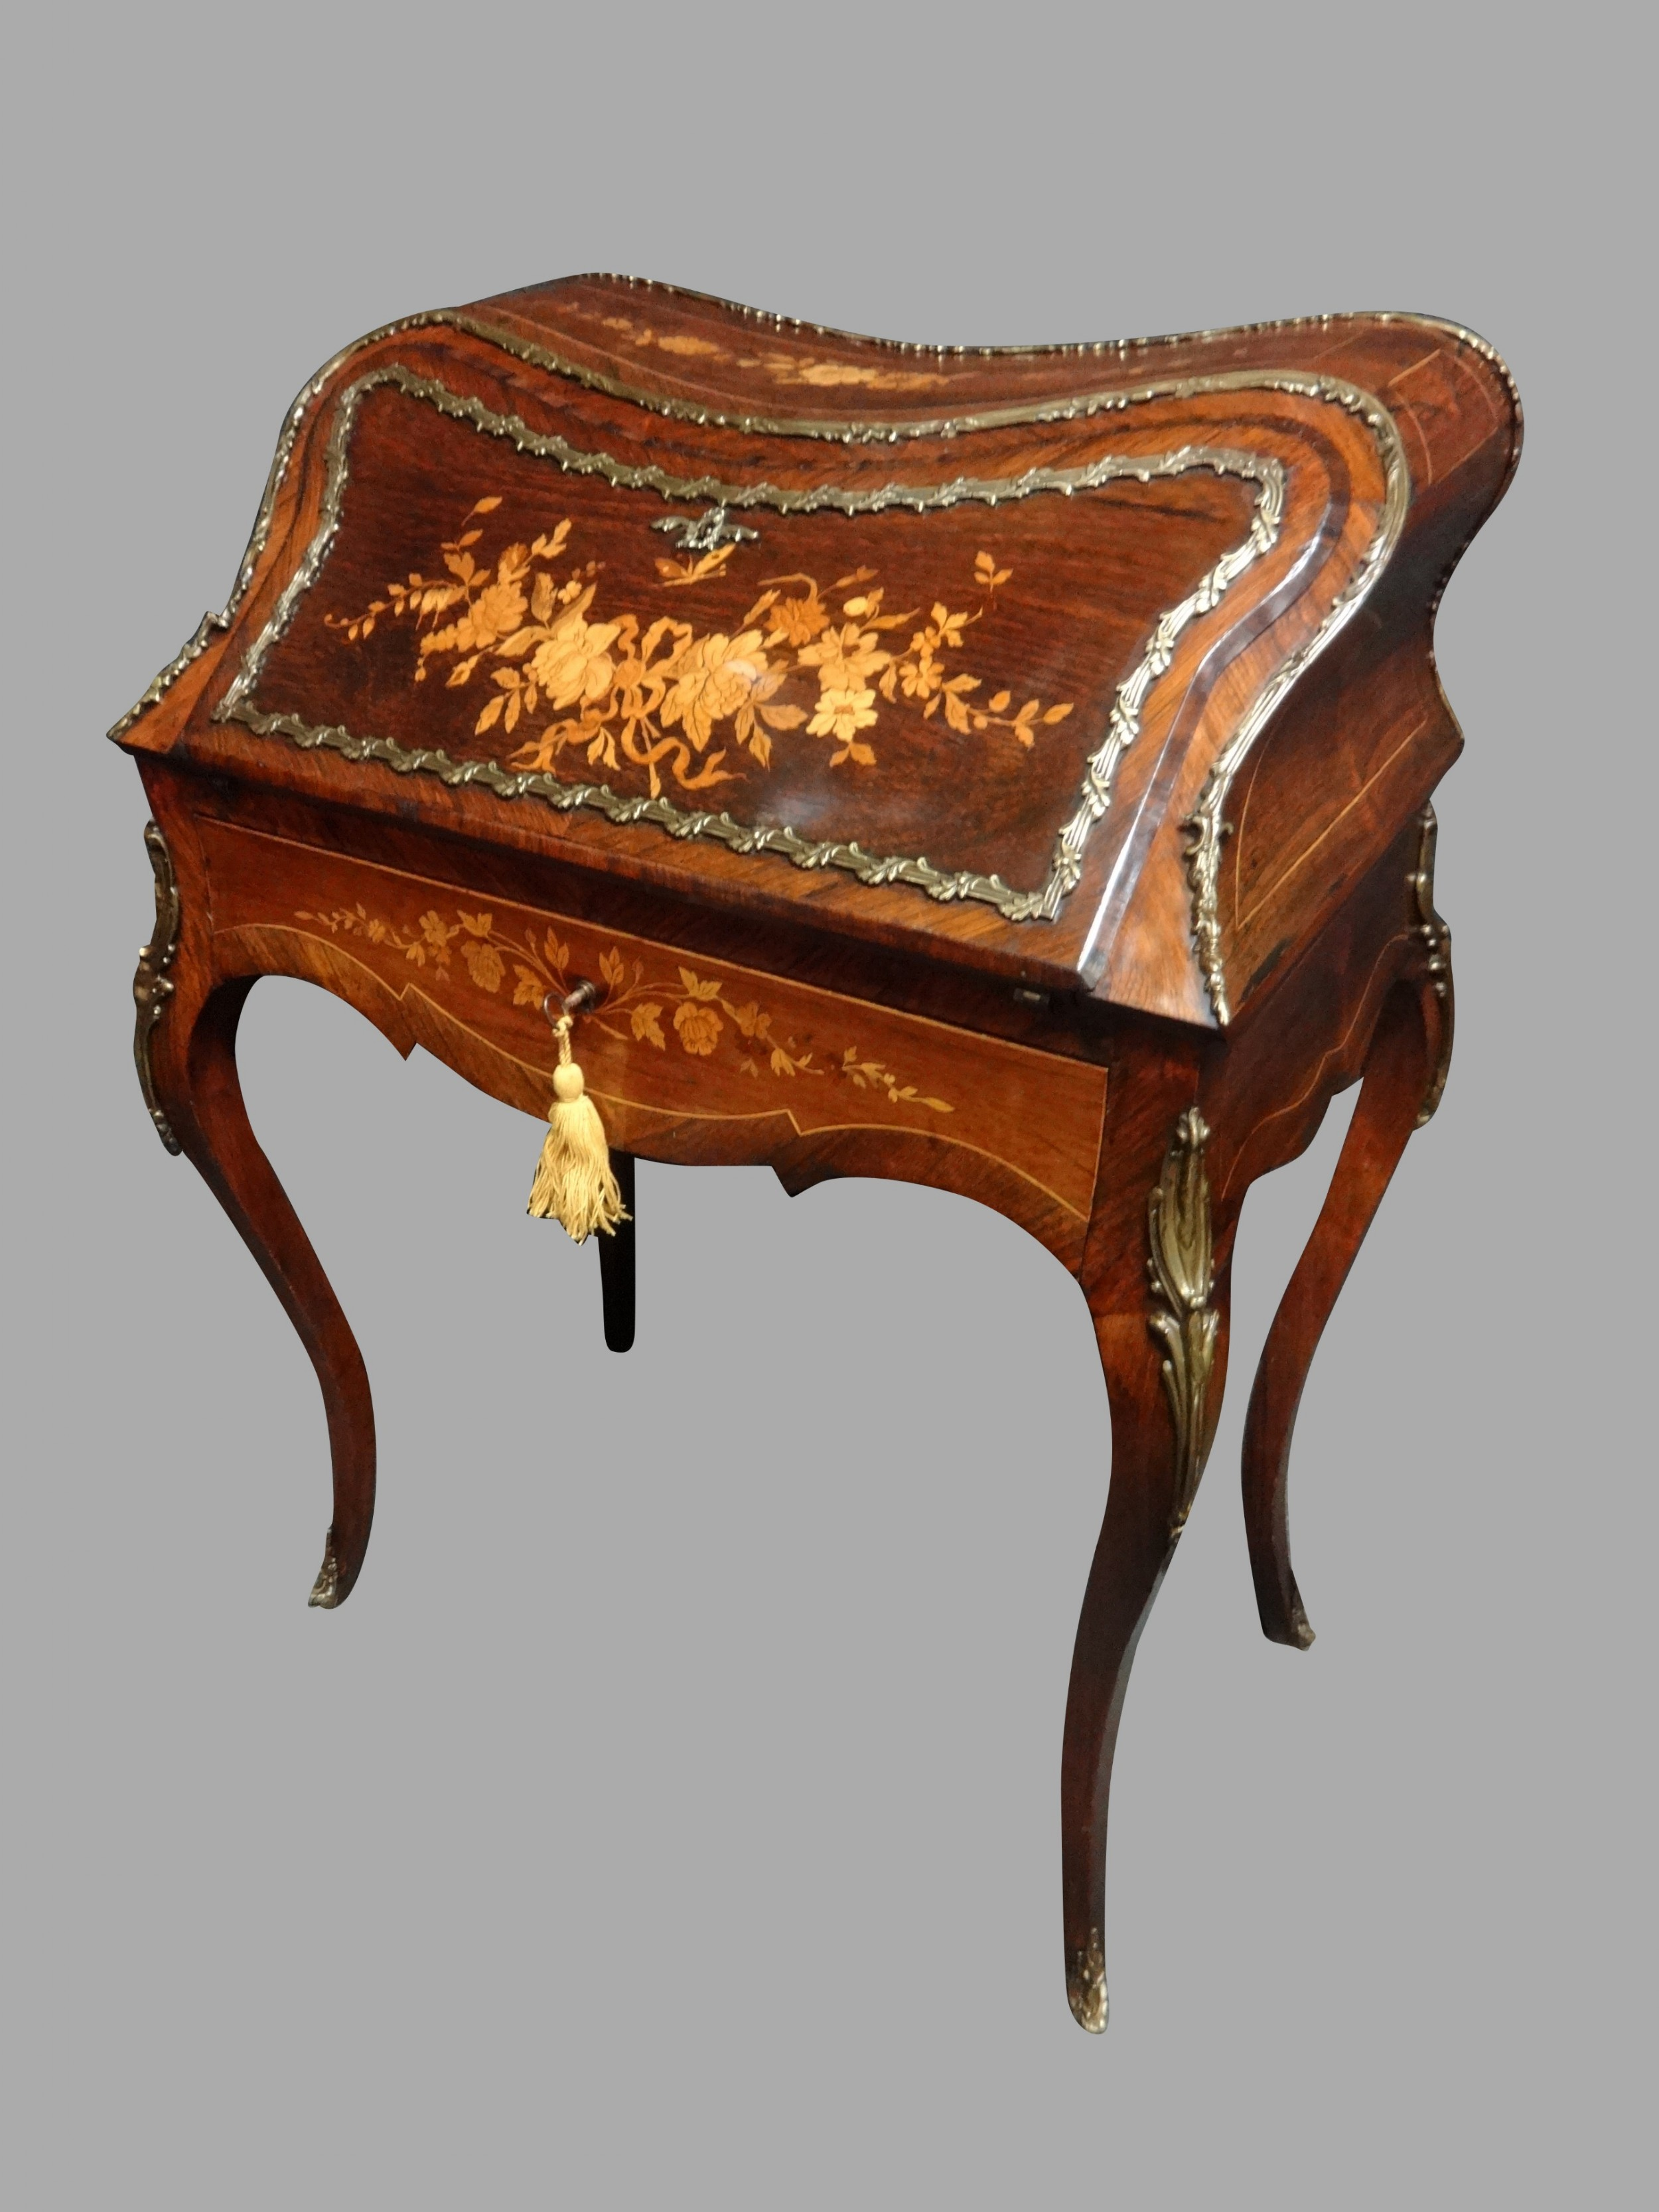 stunning french rosewood and marquetry bombe bureau de dame